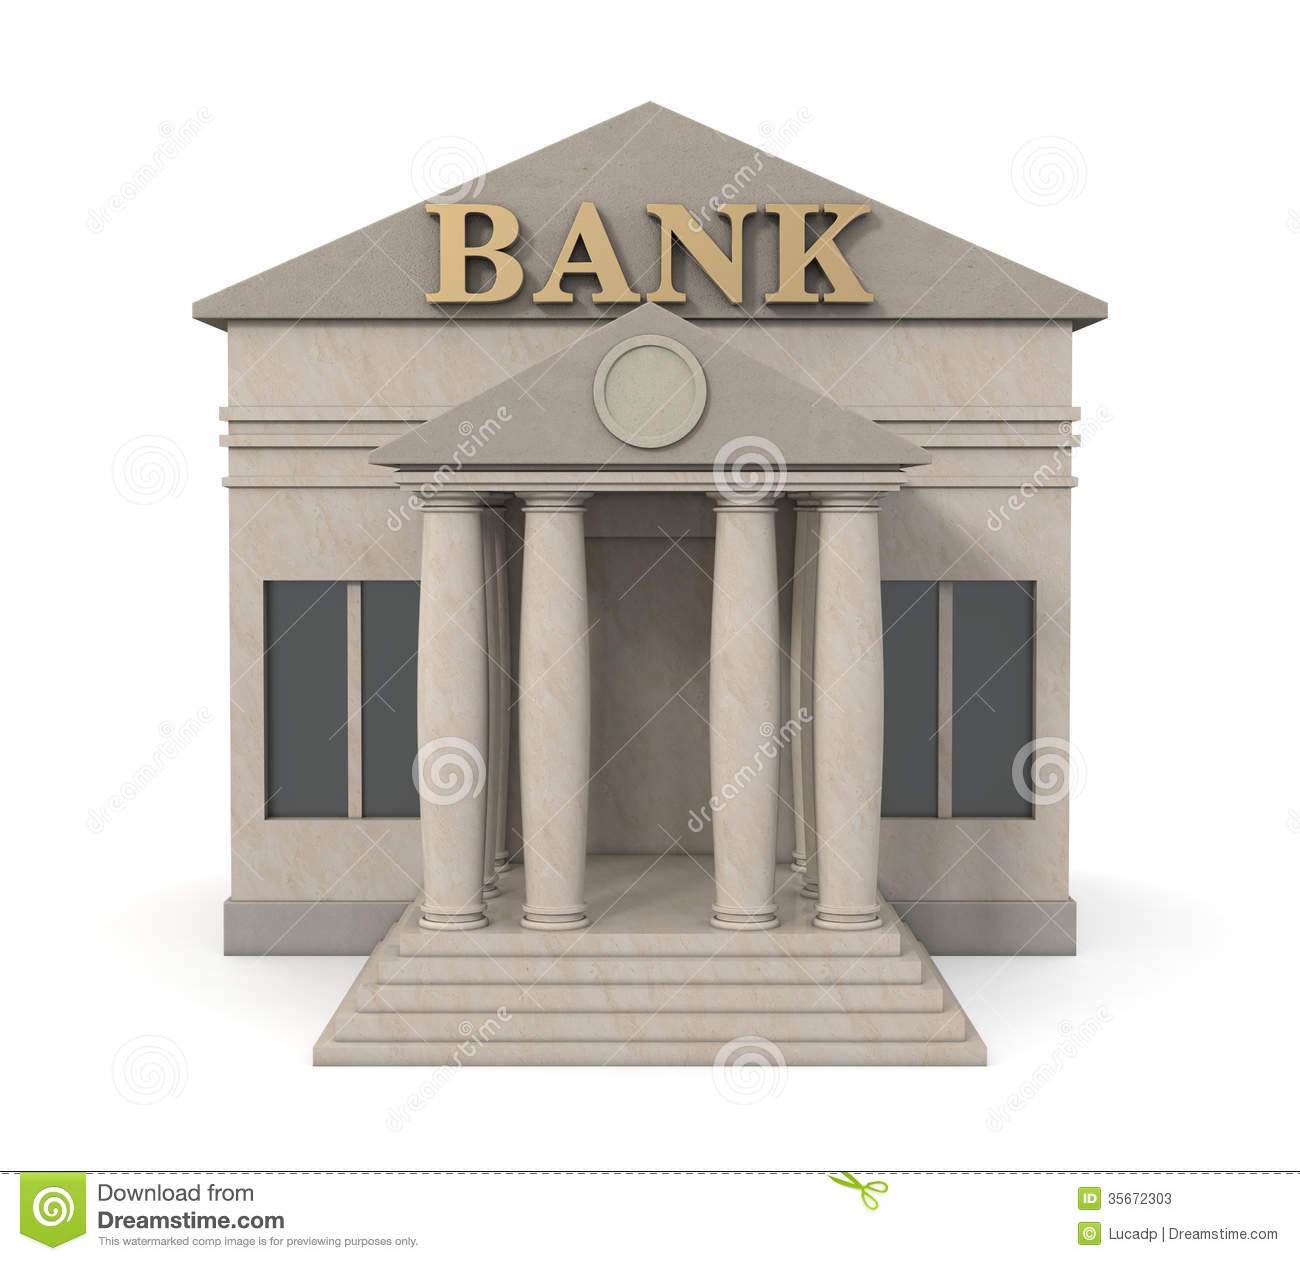 Bank Building Clipart Bank building stock photos